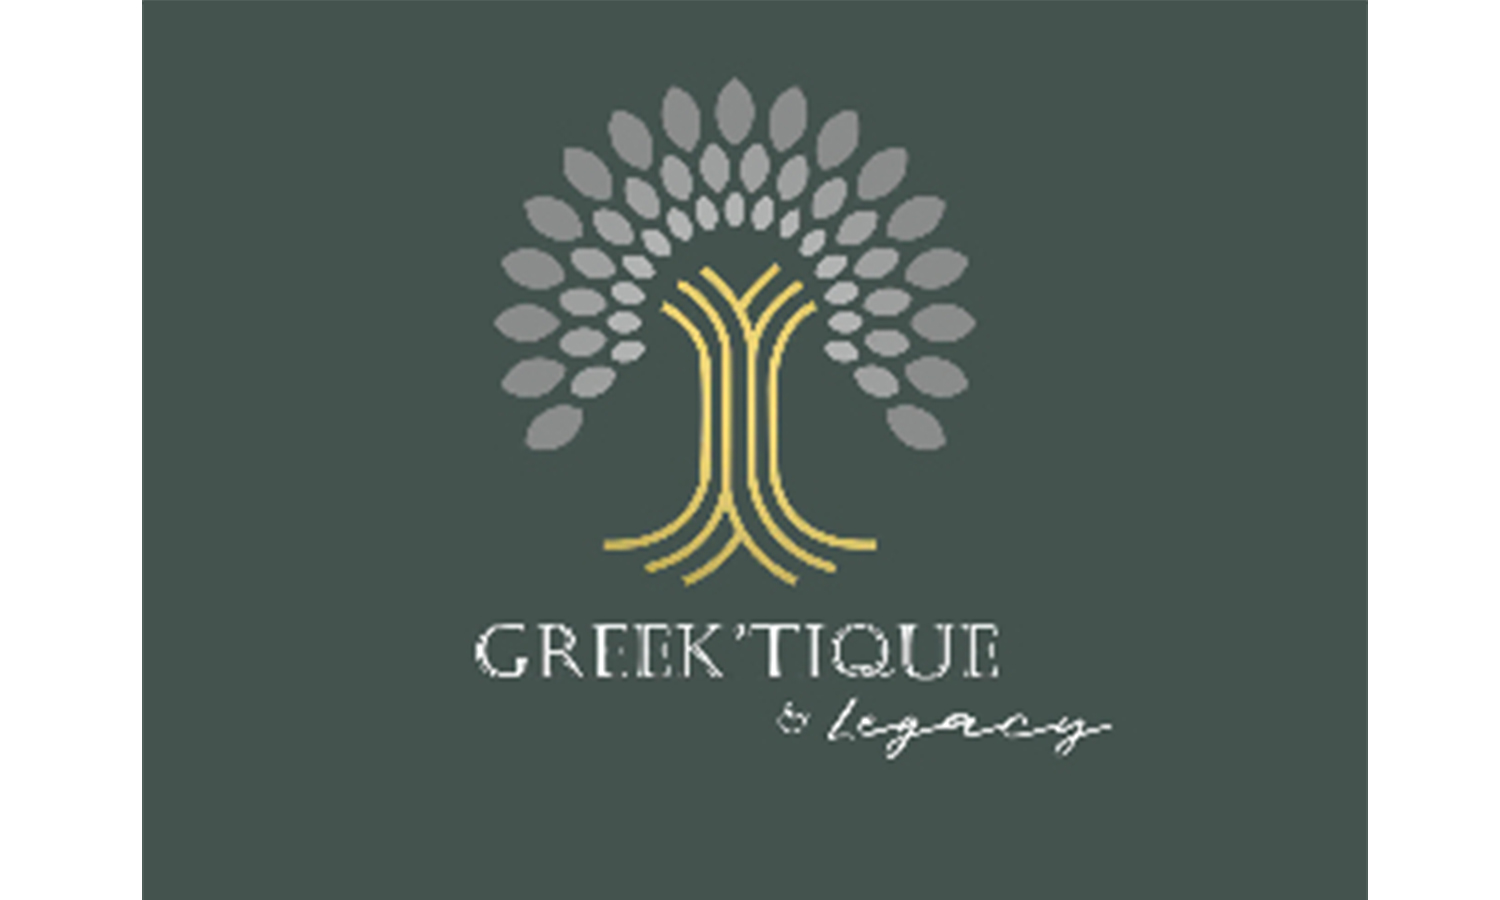 GREEK'TIQUE & LEGACY